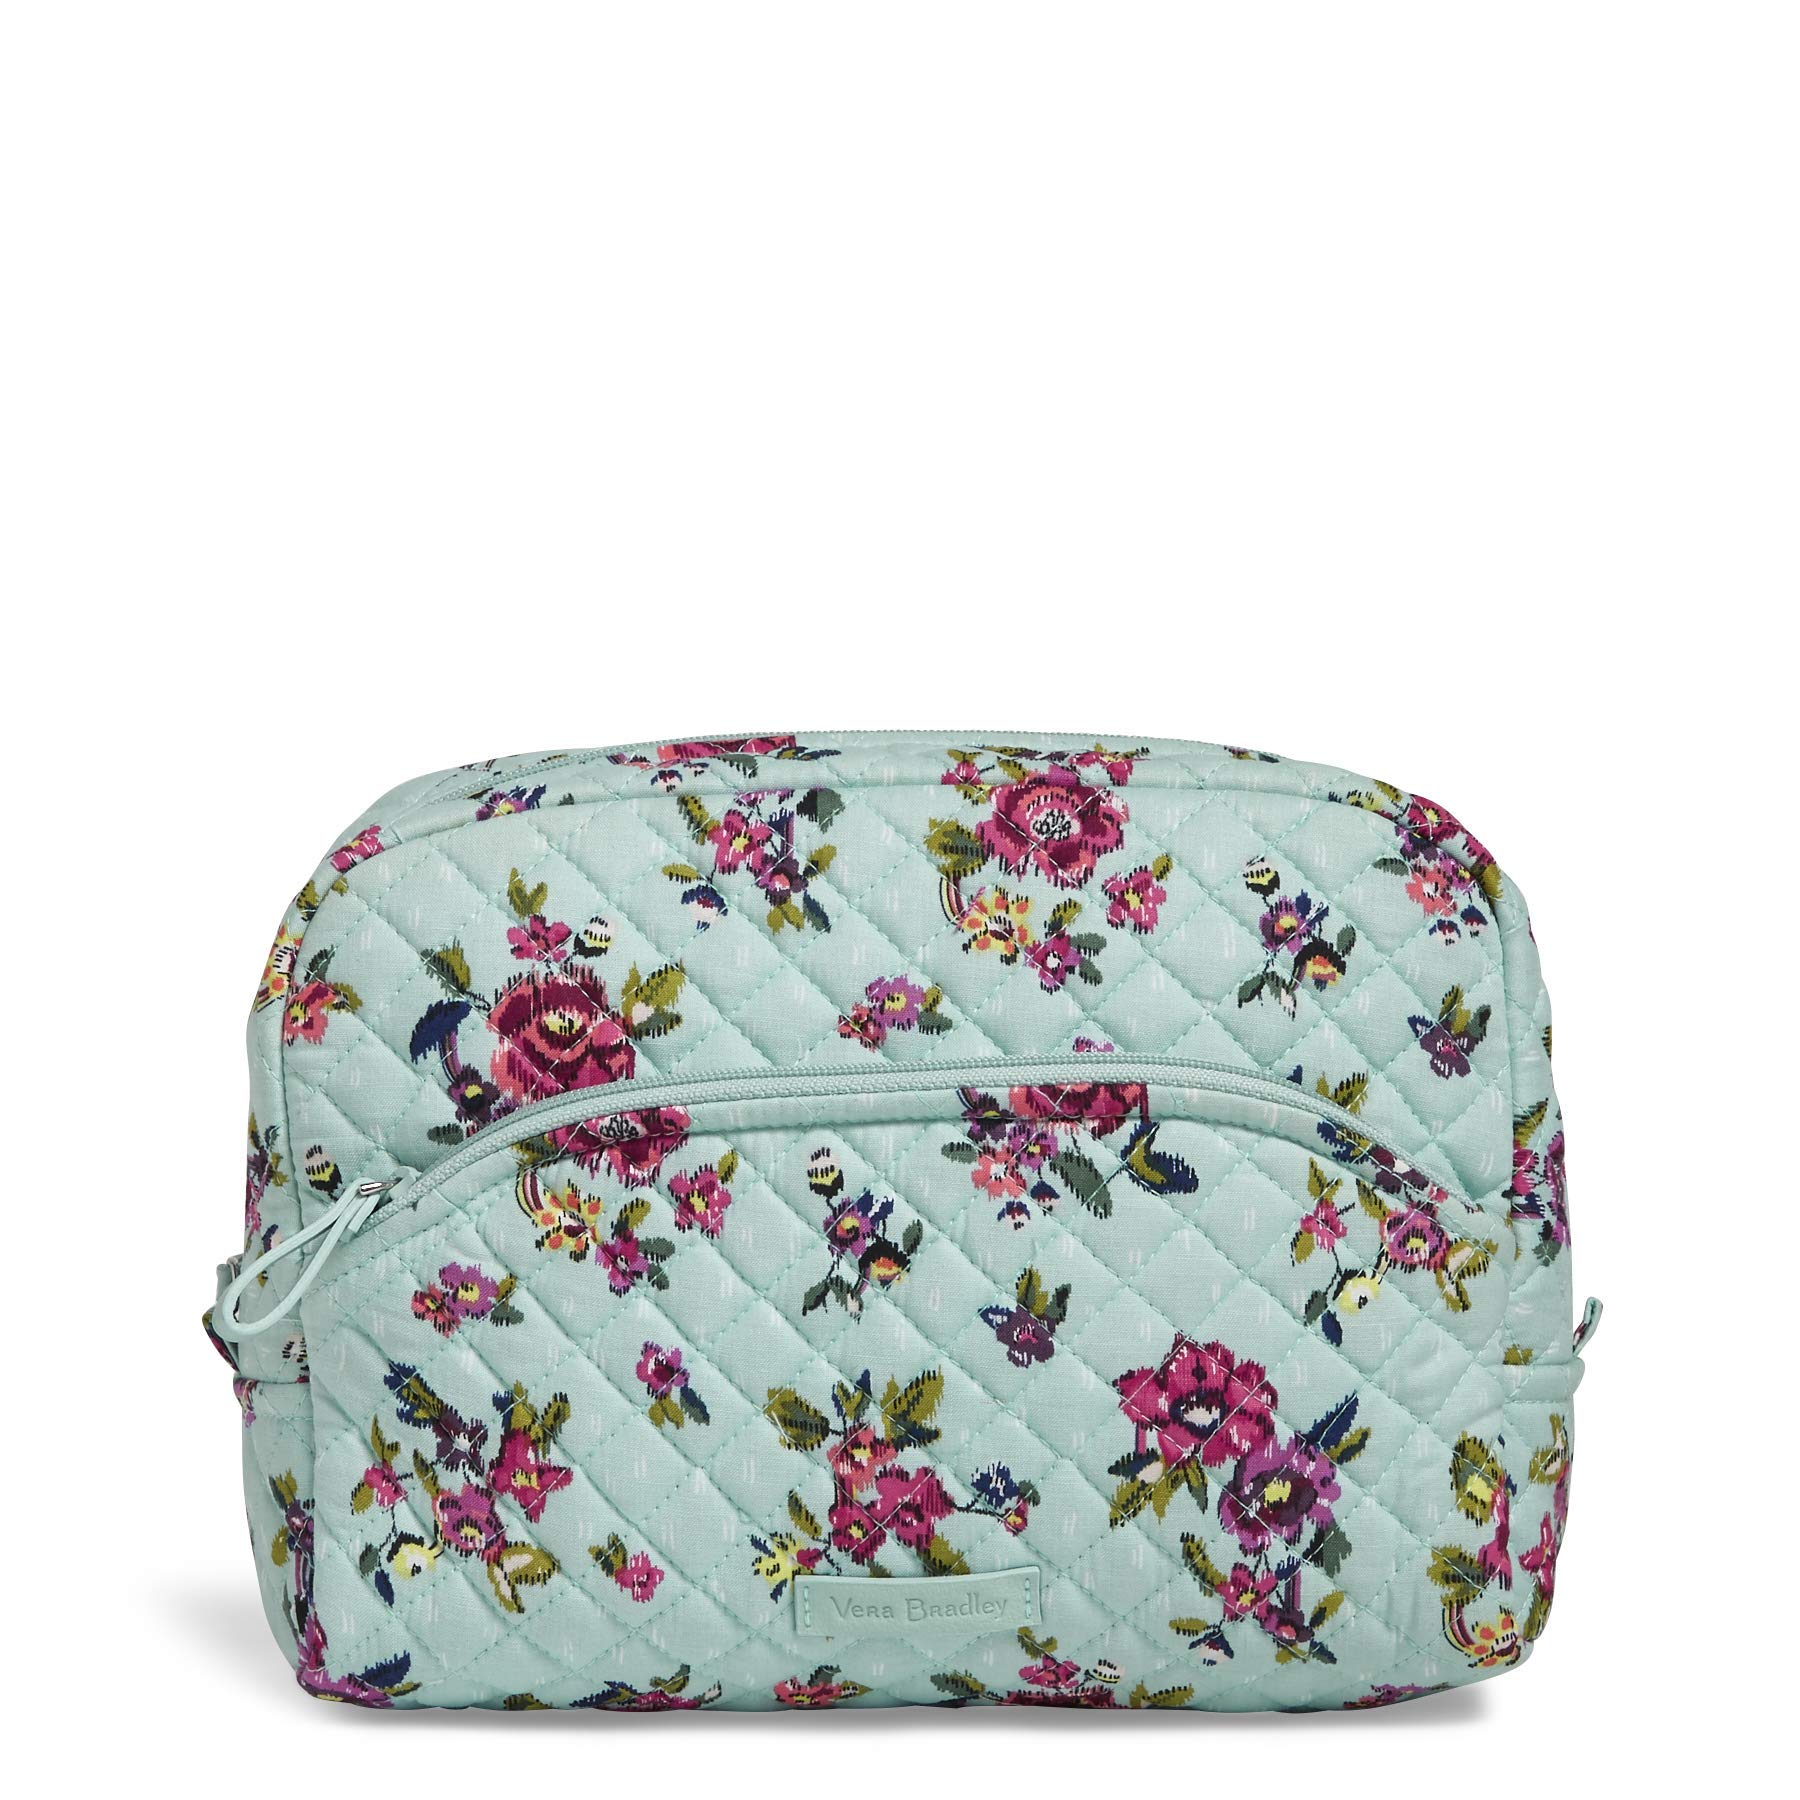 Vera Bradley Iconic Large Cosmetic, Signature Cotton, water bouquet